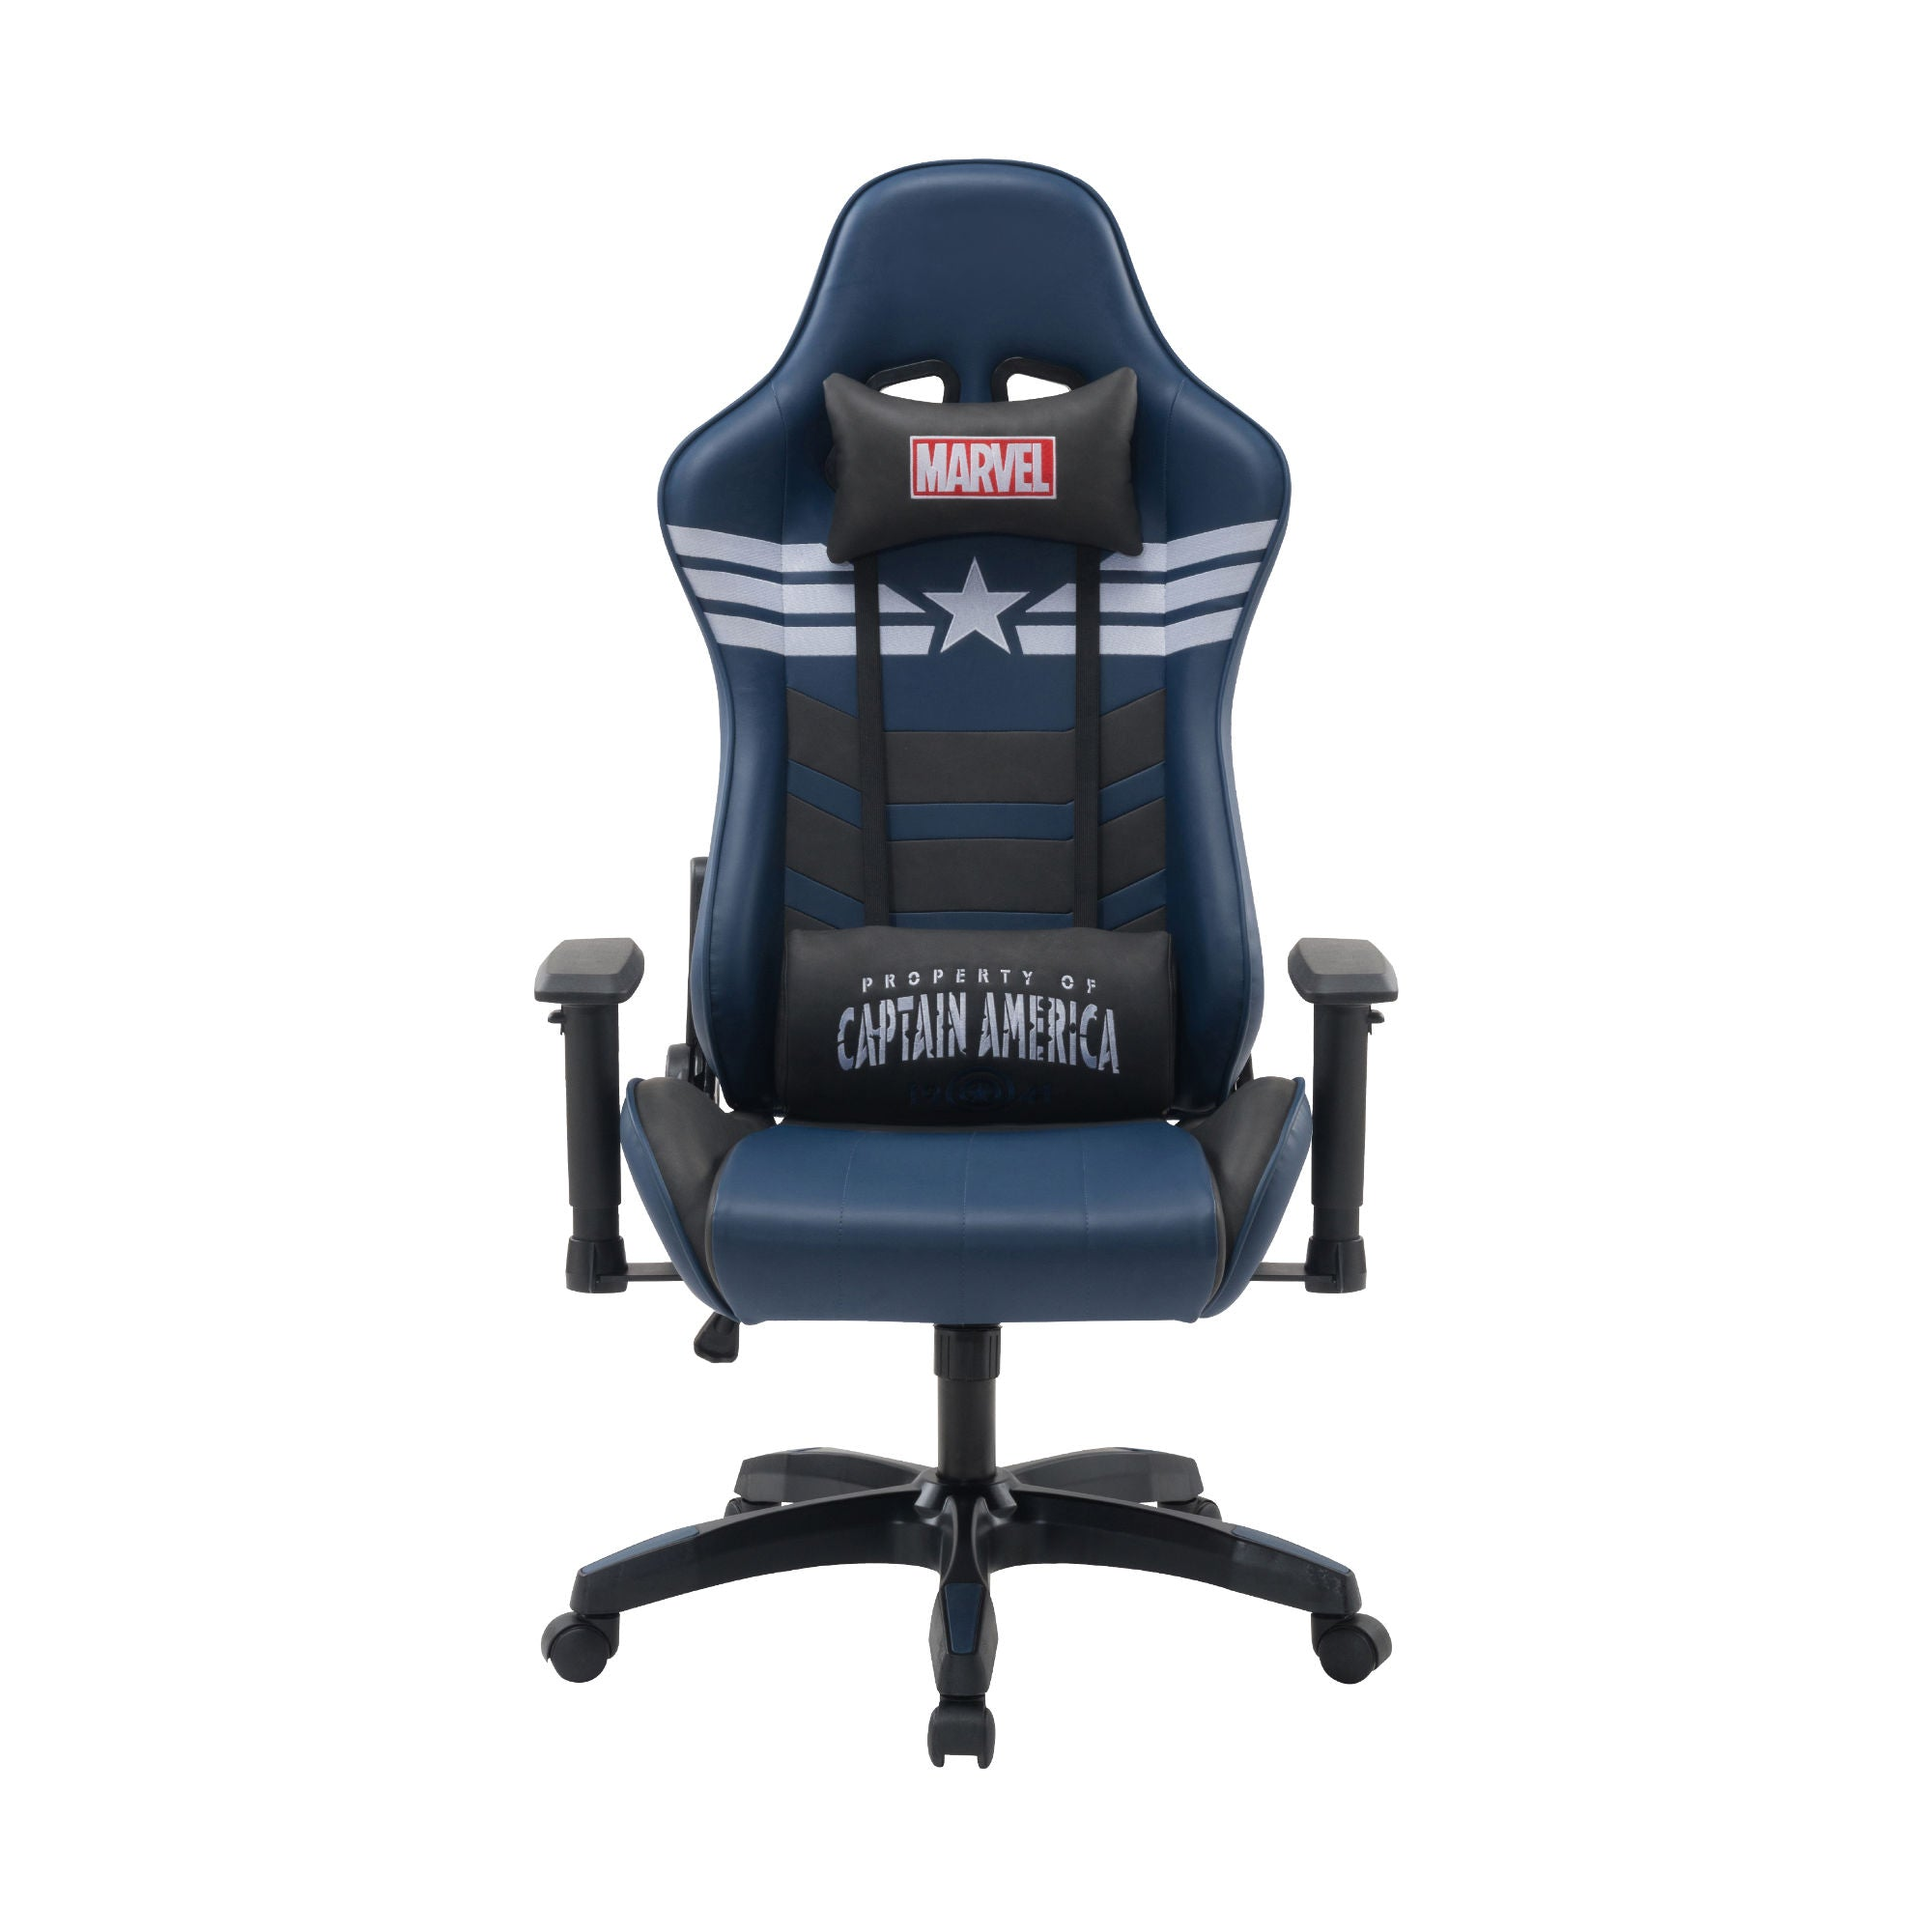 Marvel Avenger Gaming Chair Series E Type , Captain America